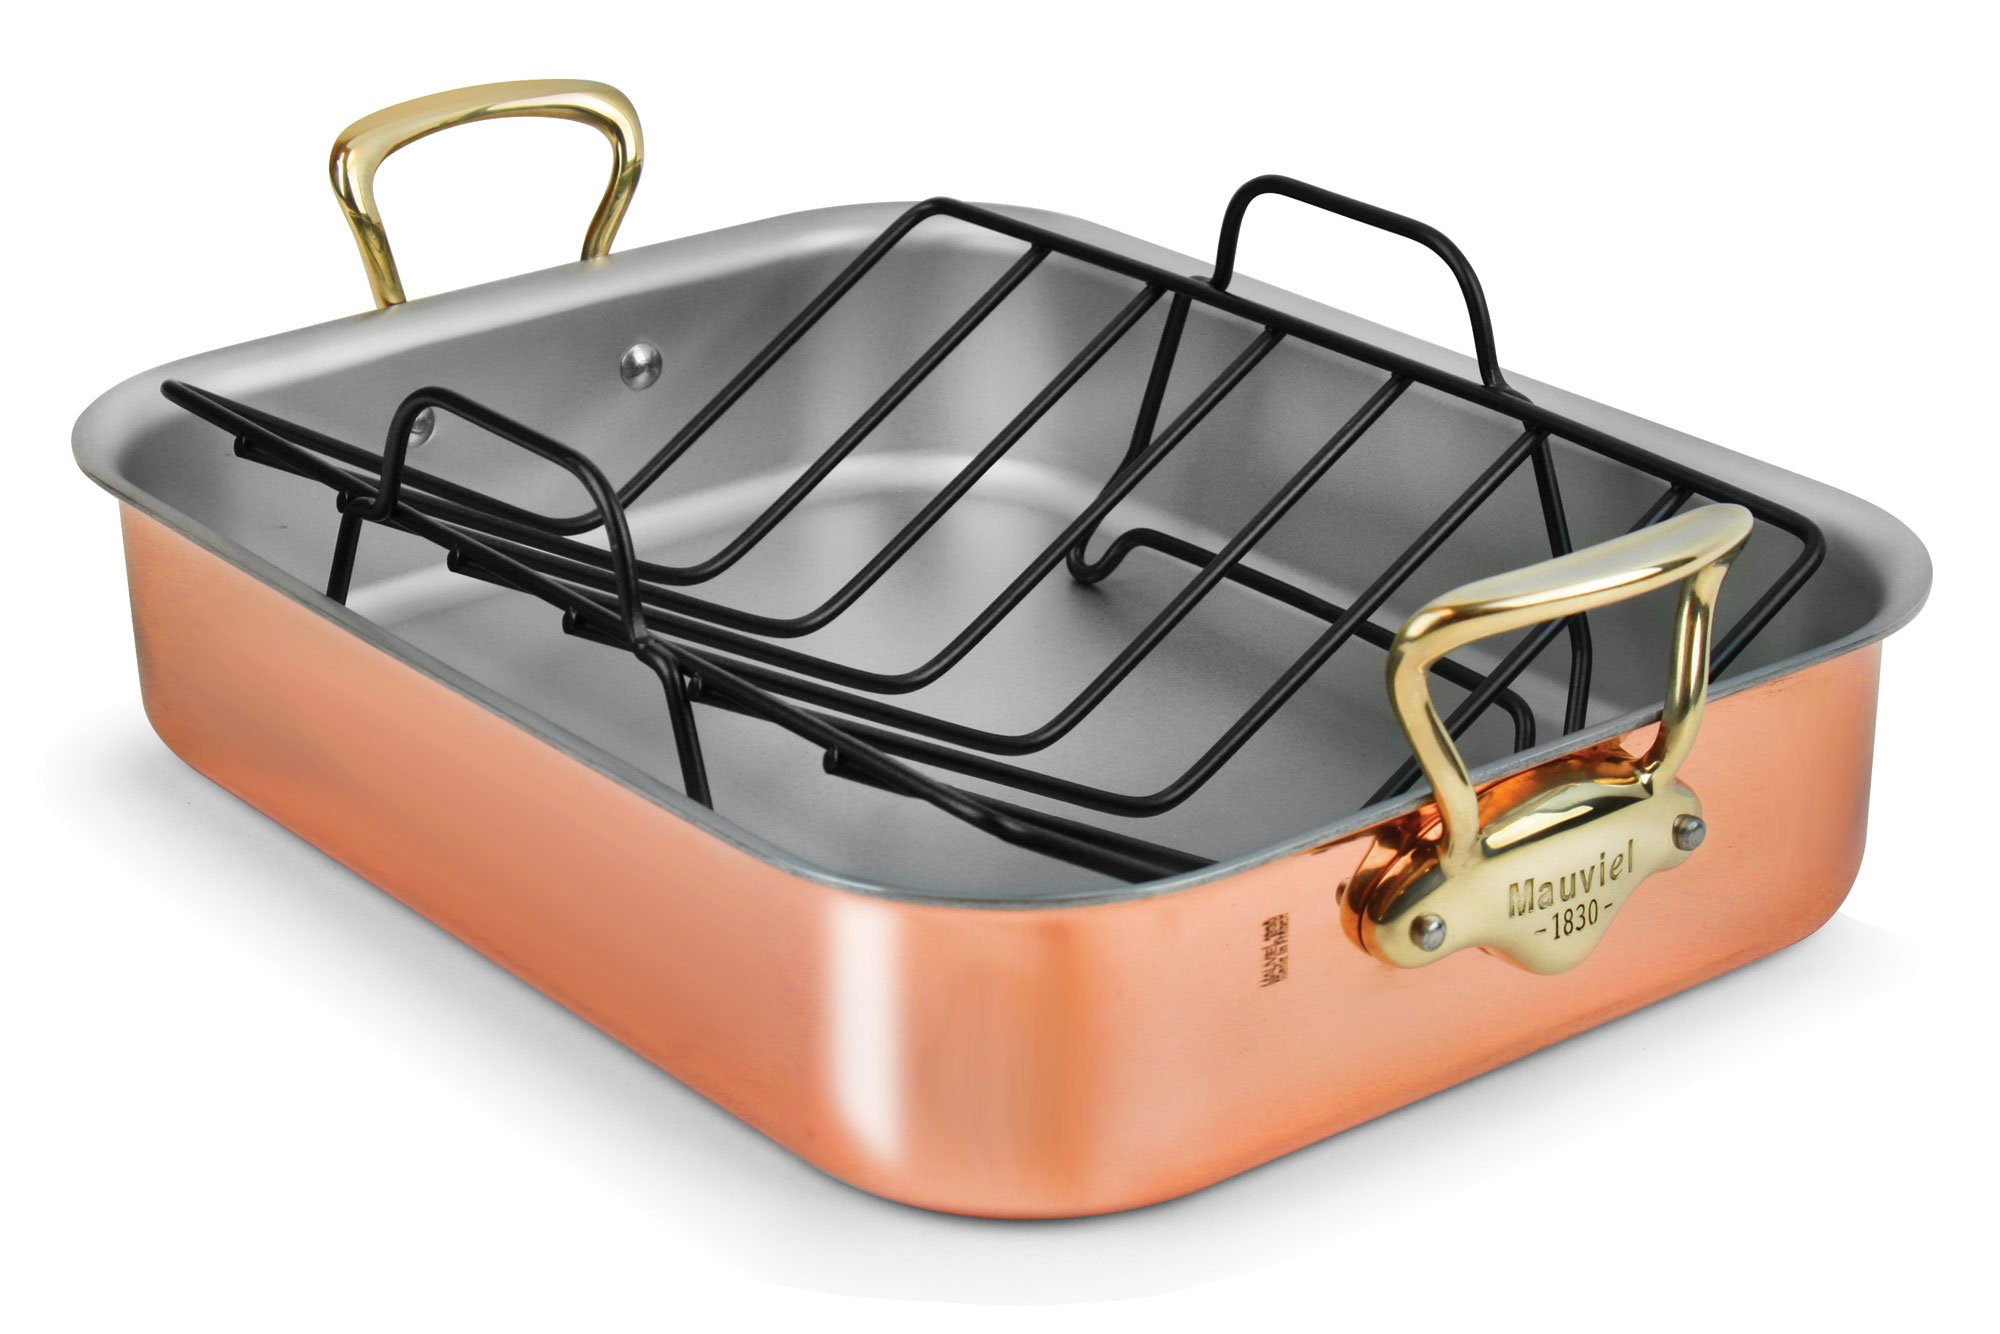 Mauviel Copper Roasting Pan with Rack (Bronze Handles)